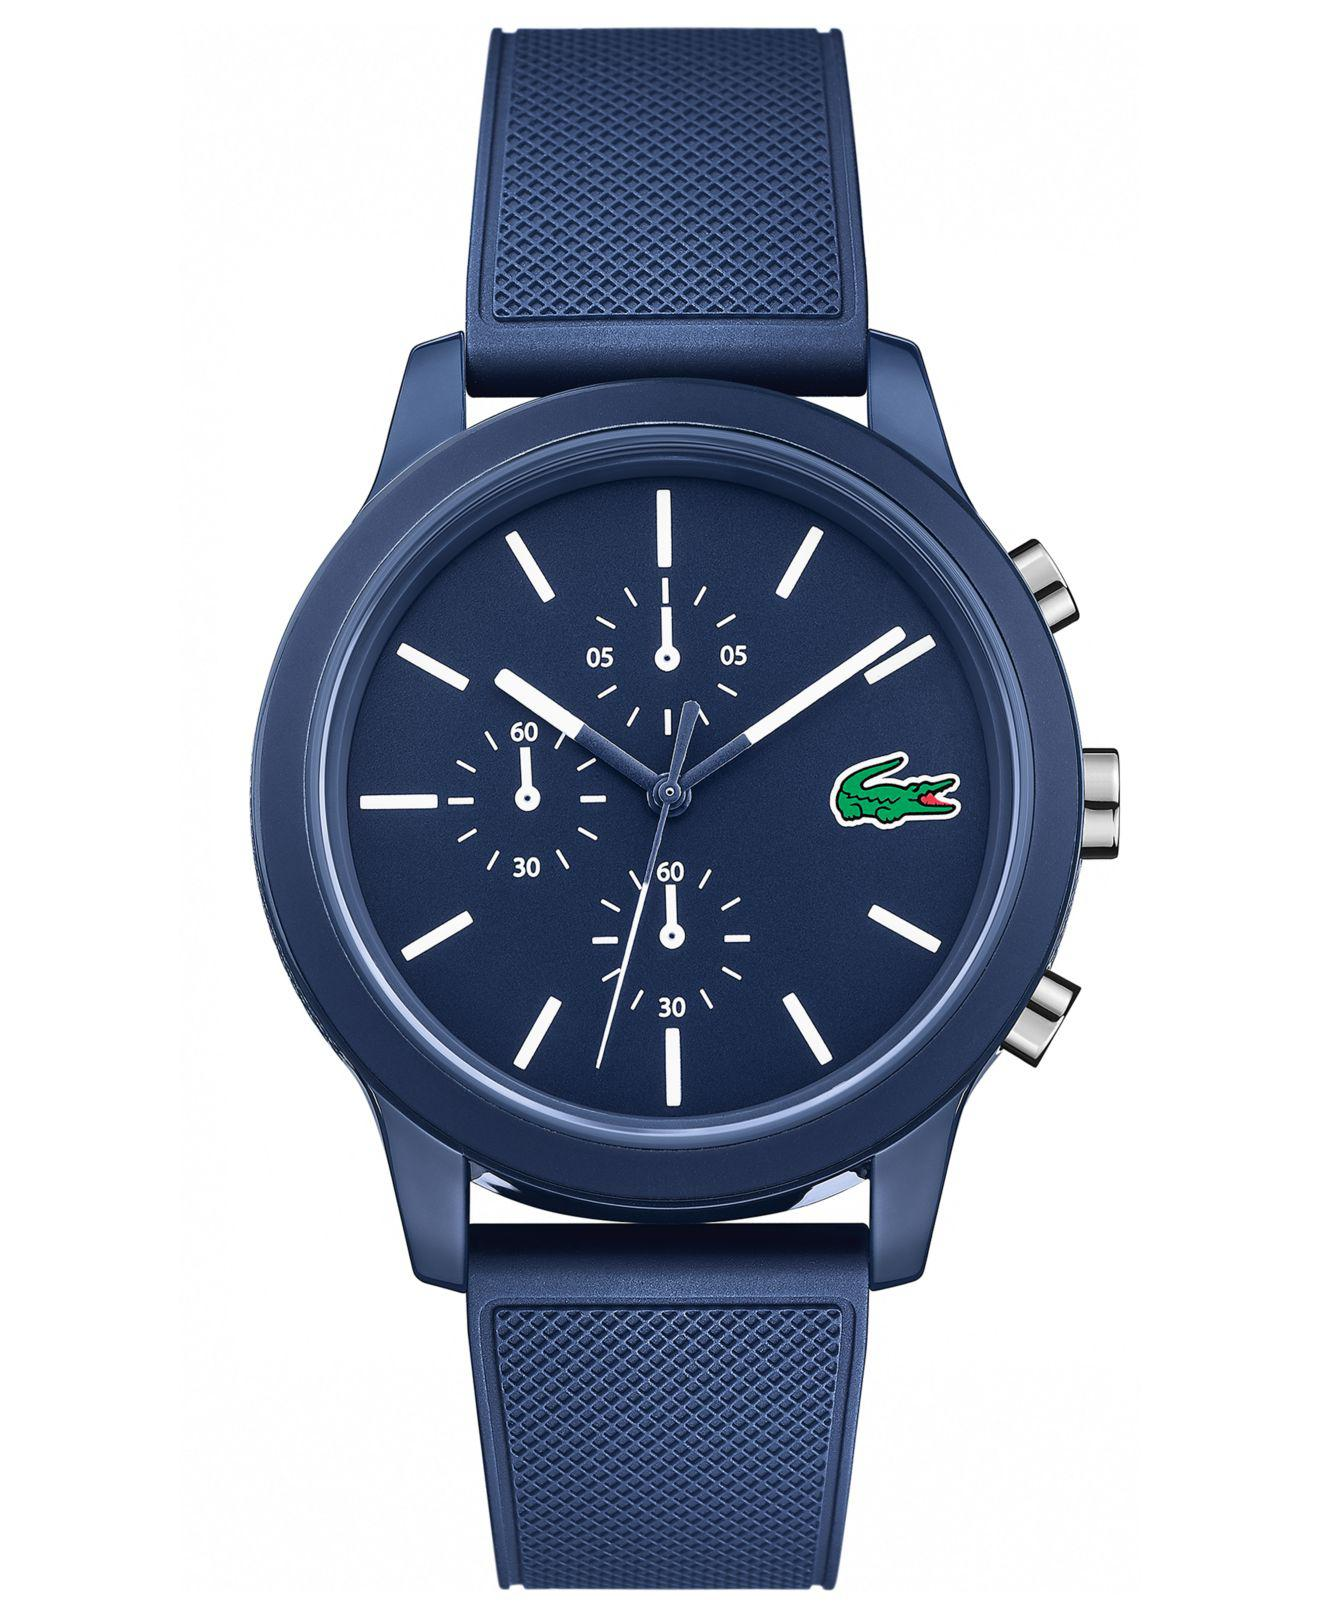 Lacoste. Men's 12.12 Chronograph Watch With Blue Silicone Strap